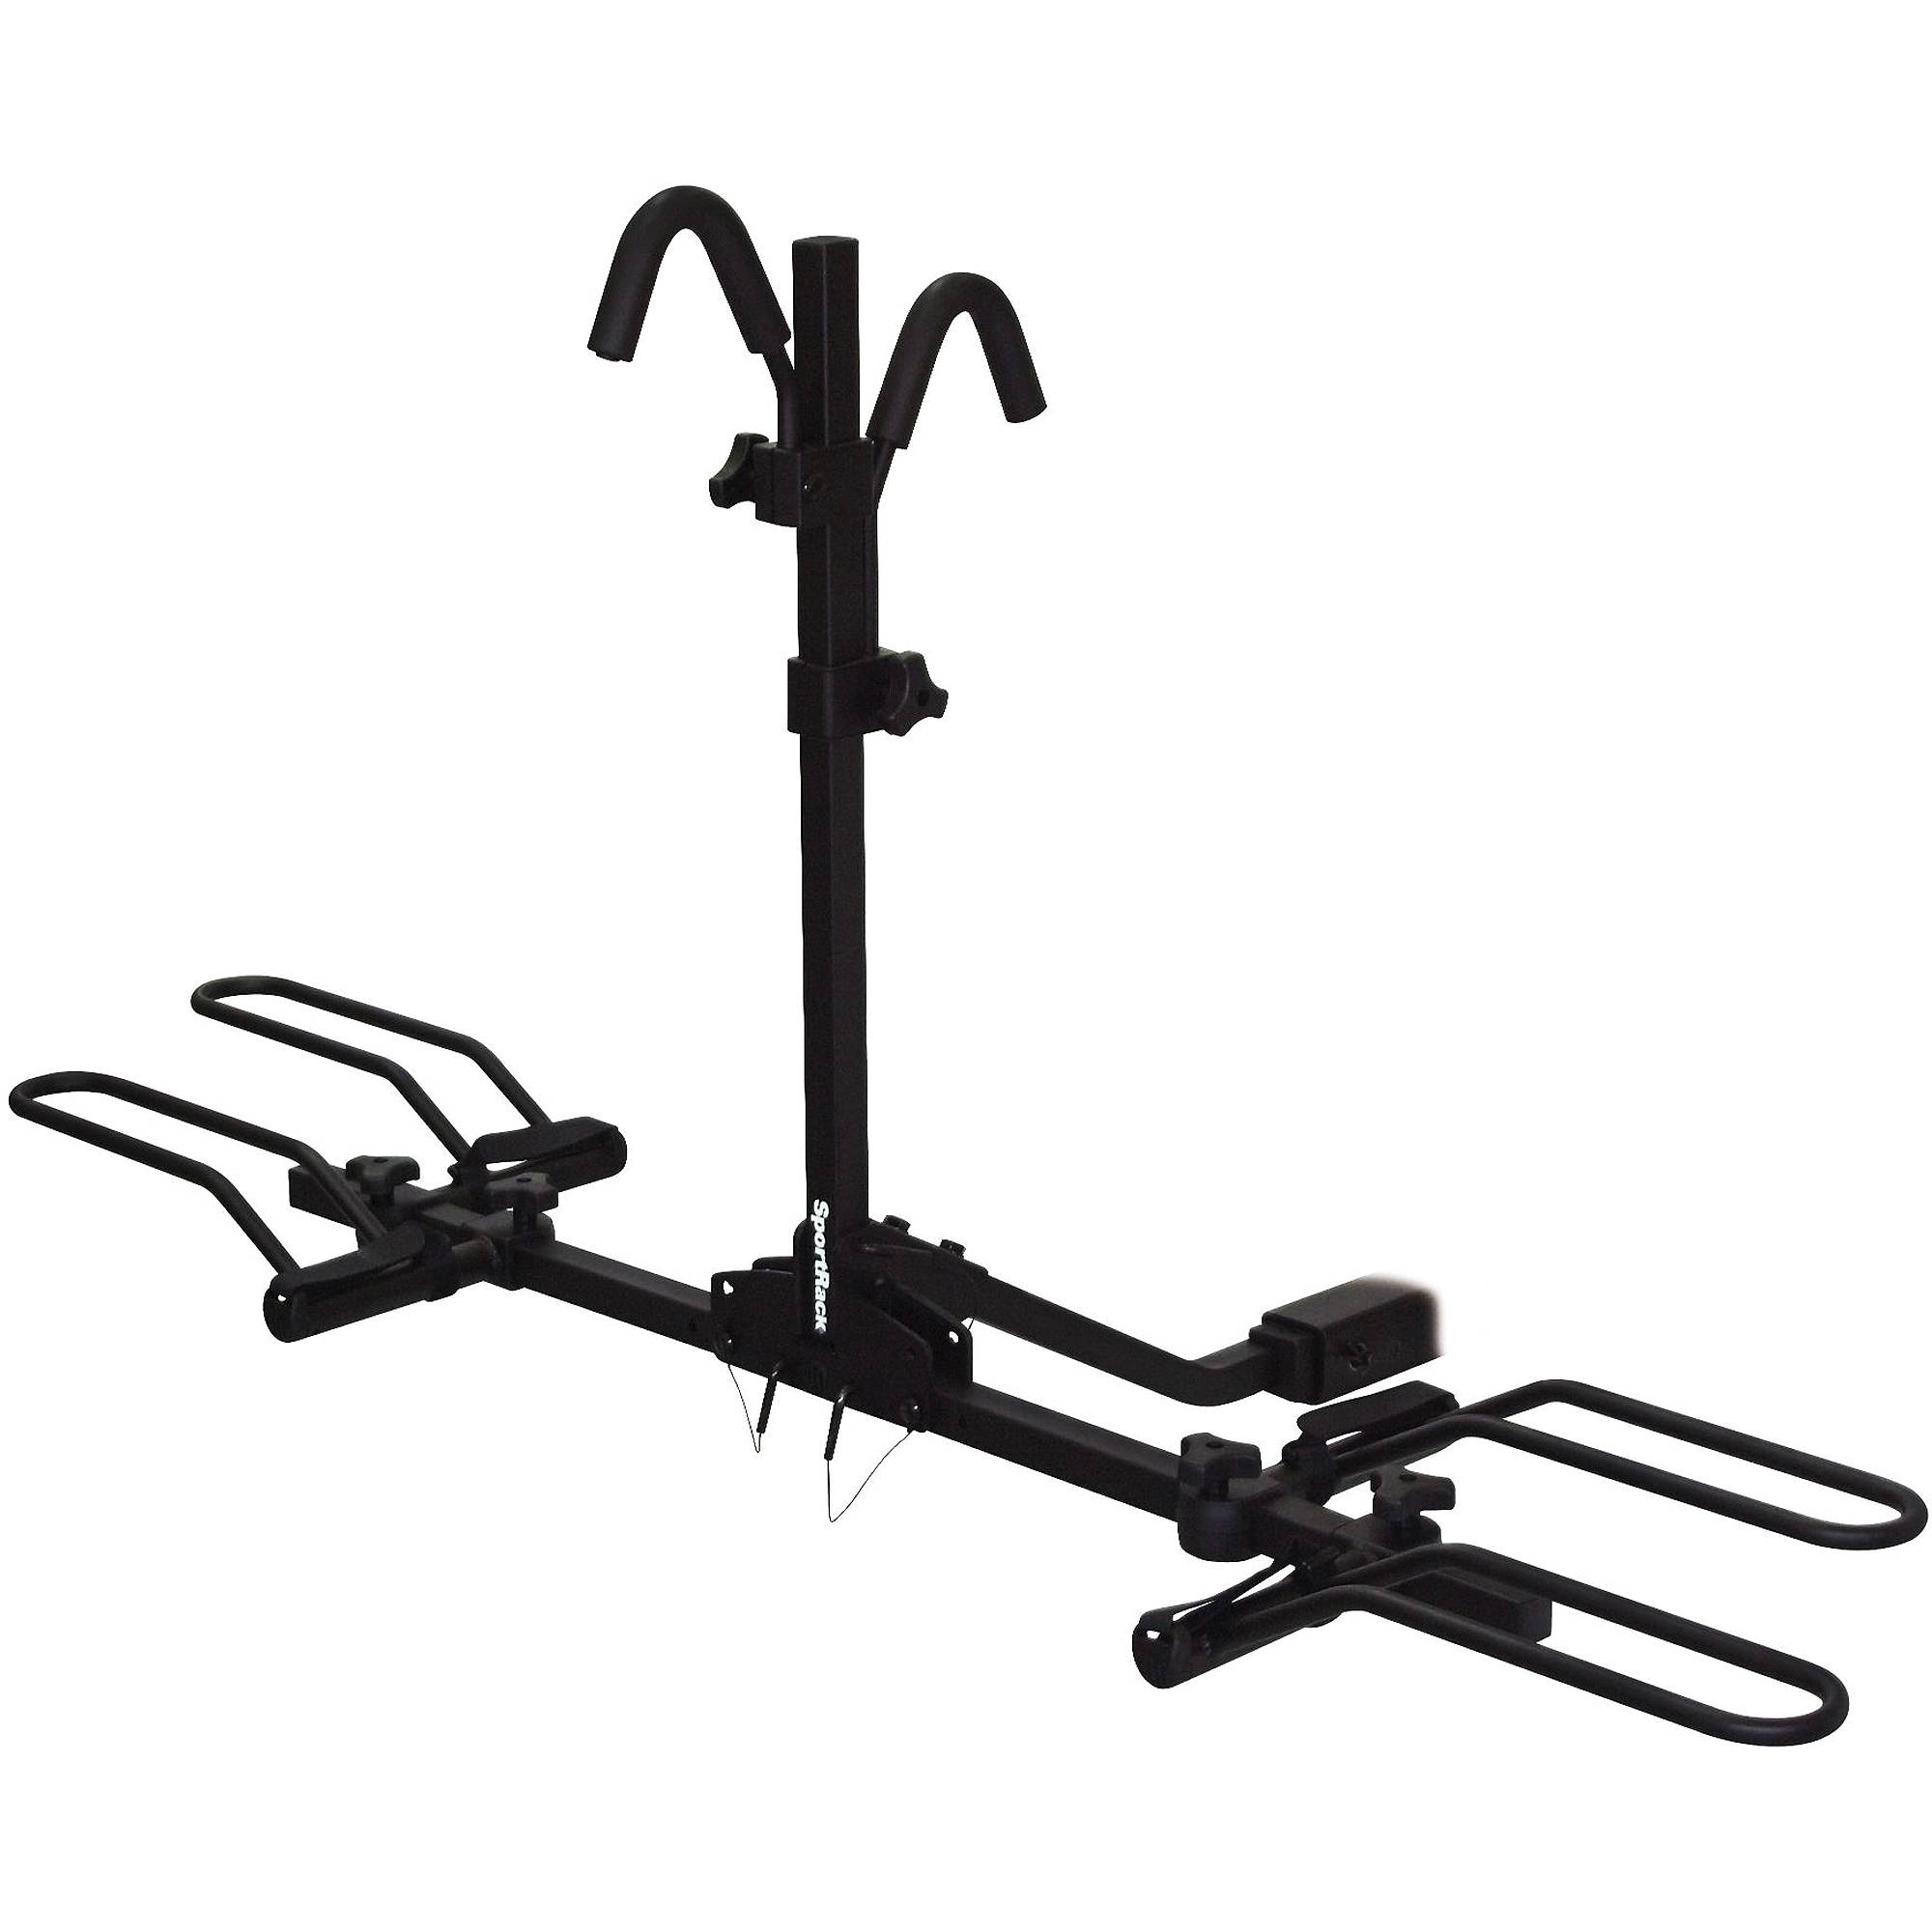 SportRack 2-Bike 2EZ Hitch Platform Bicycle Carrier Model #30901